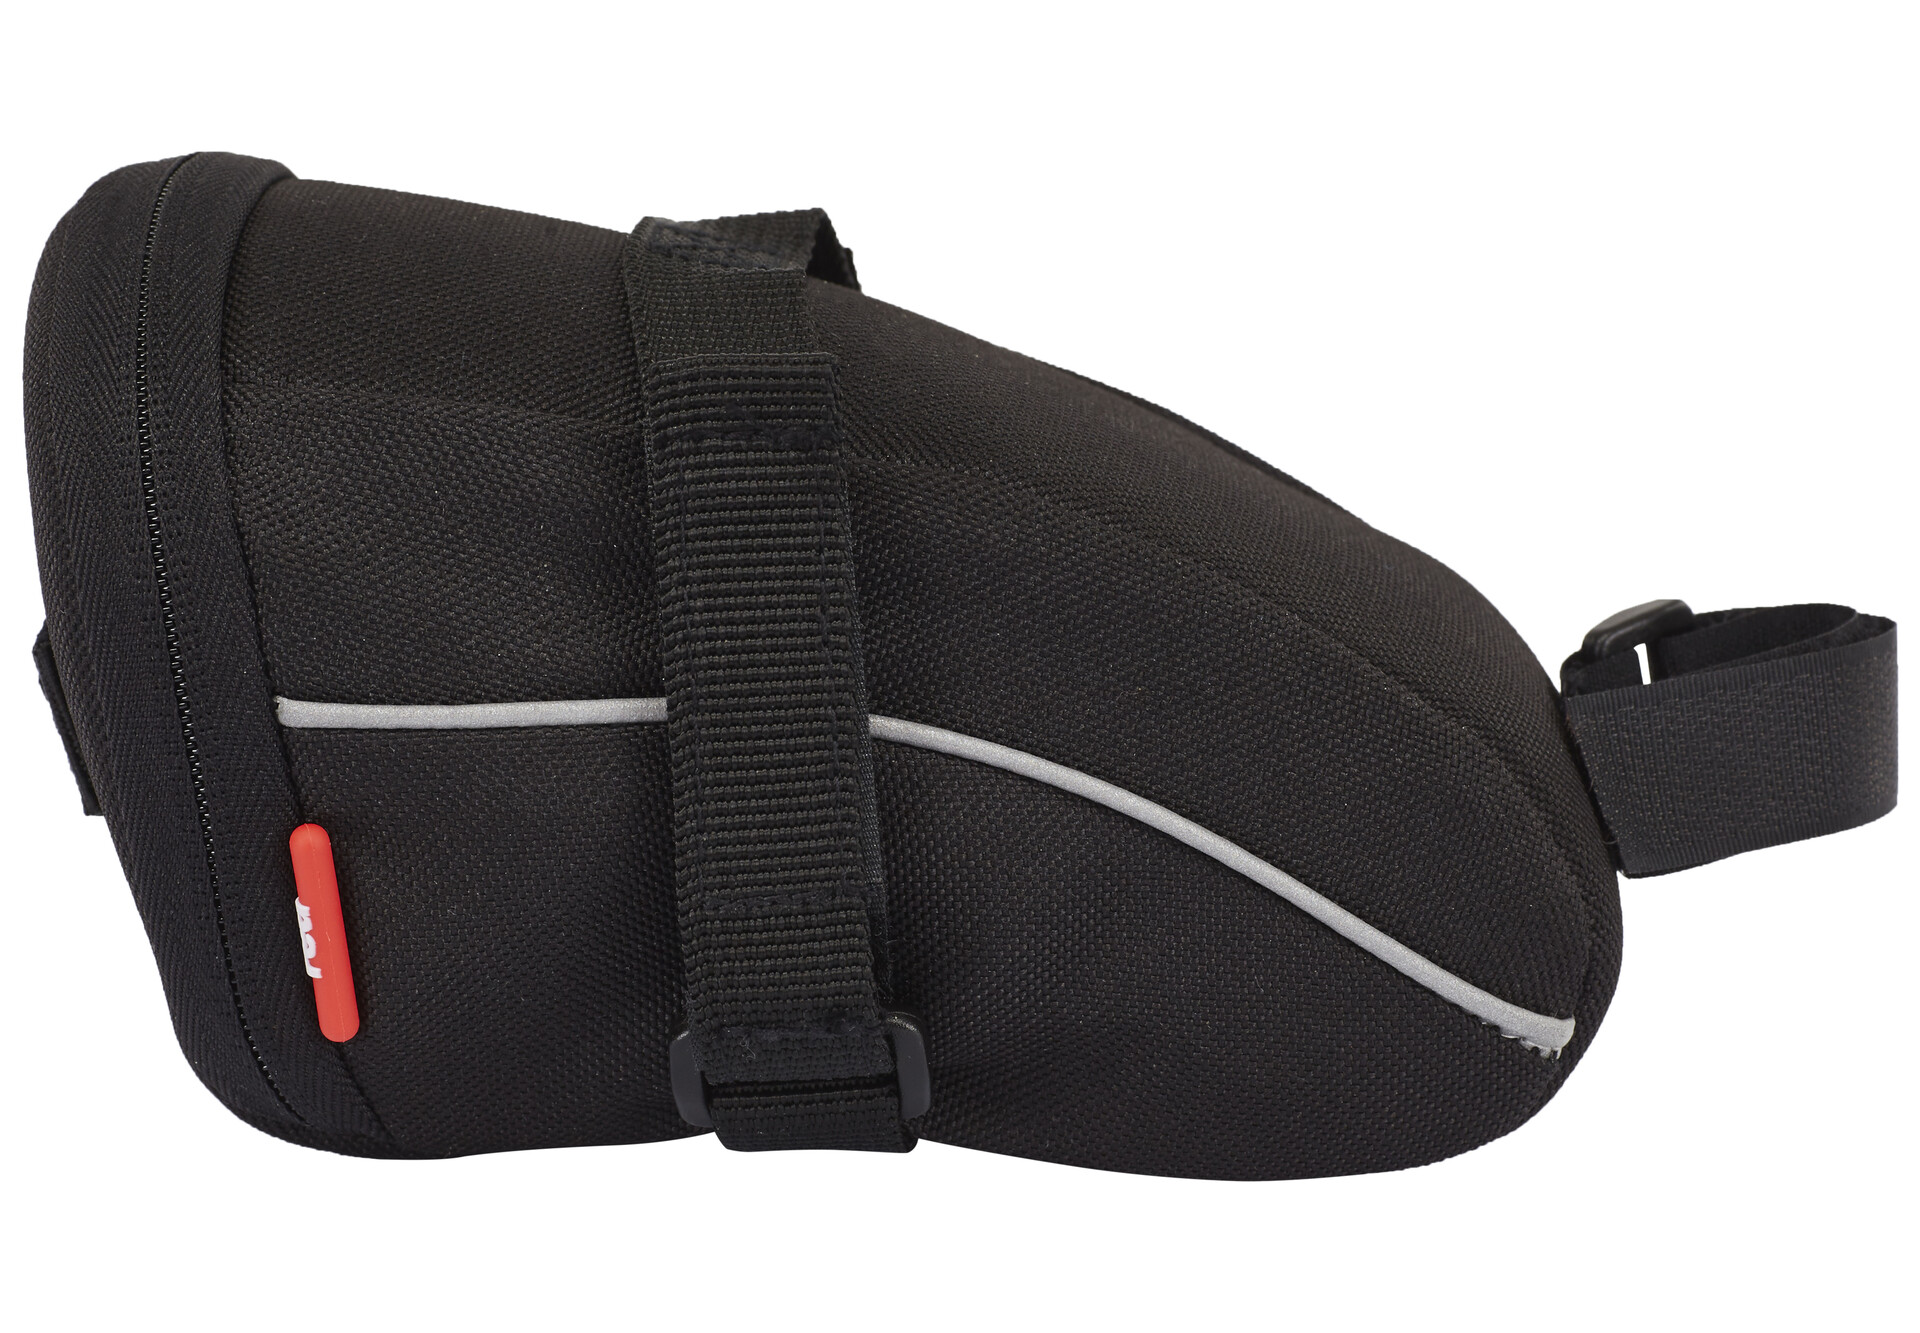 Red Cycling Products Saddle Bag Cykeltaske L, black